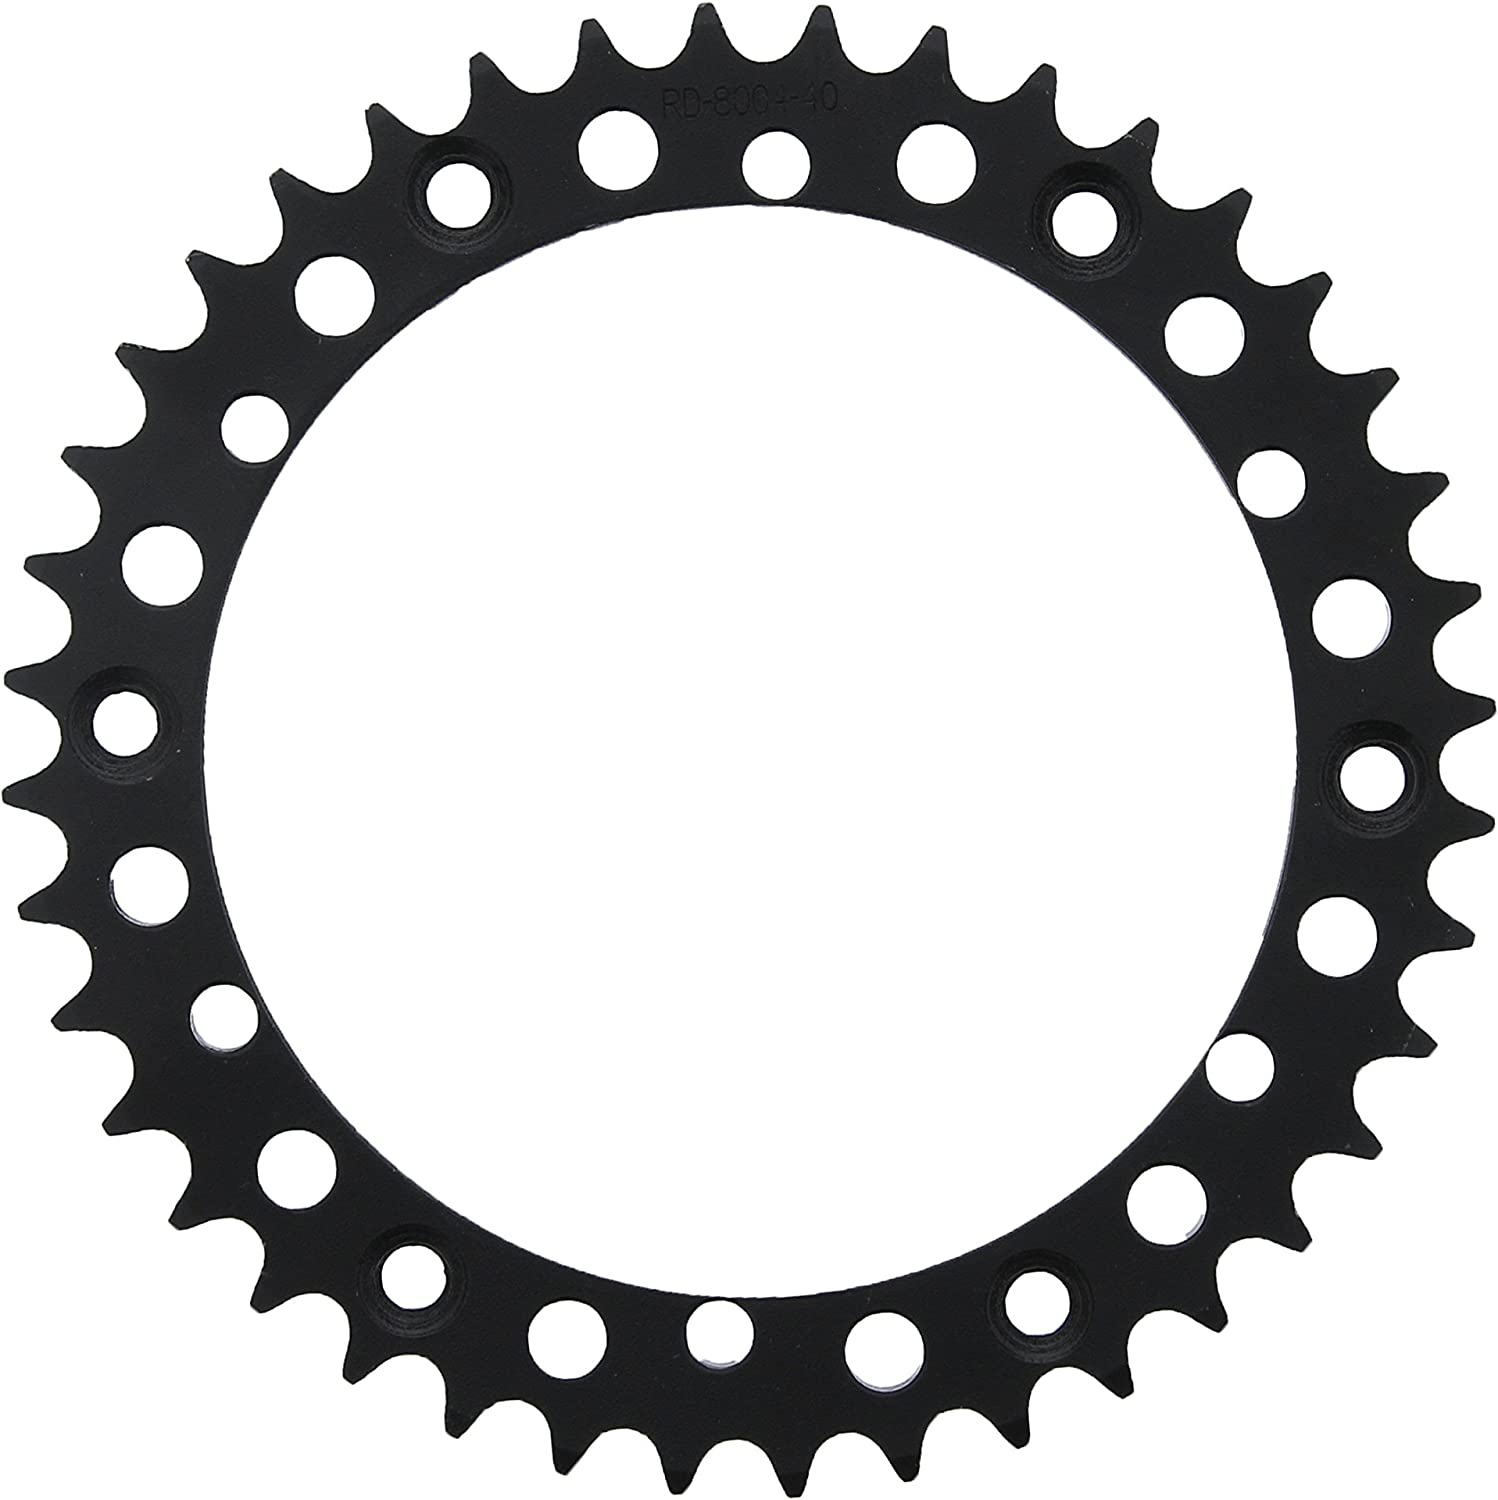 1998-2000 fits Yamaha YFM 350 Warrior Yellow O-Ring Chain /& Black Sprocket 14//40 98L